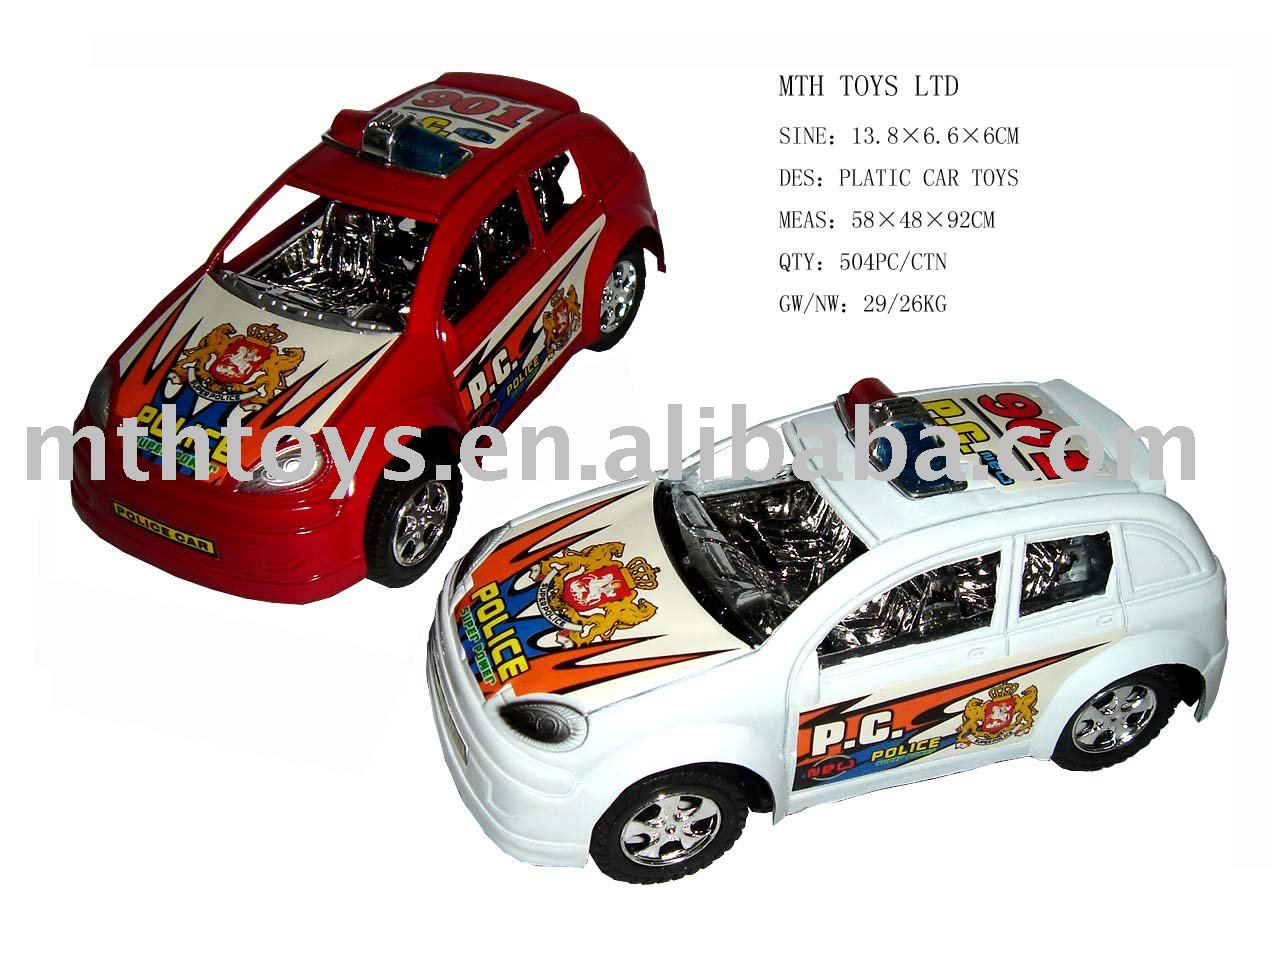 plastic frictional / pull back police toy car vehicle toy, View toy car, MTHTOYS Product Details from Shantou Meihui Toys Co., Ltd. on Alibaba.com